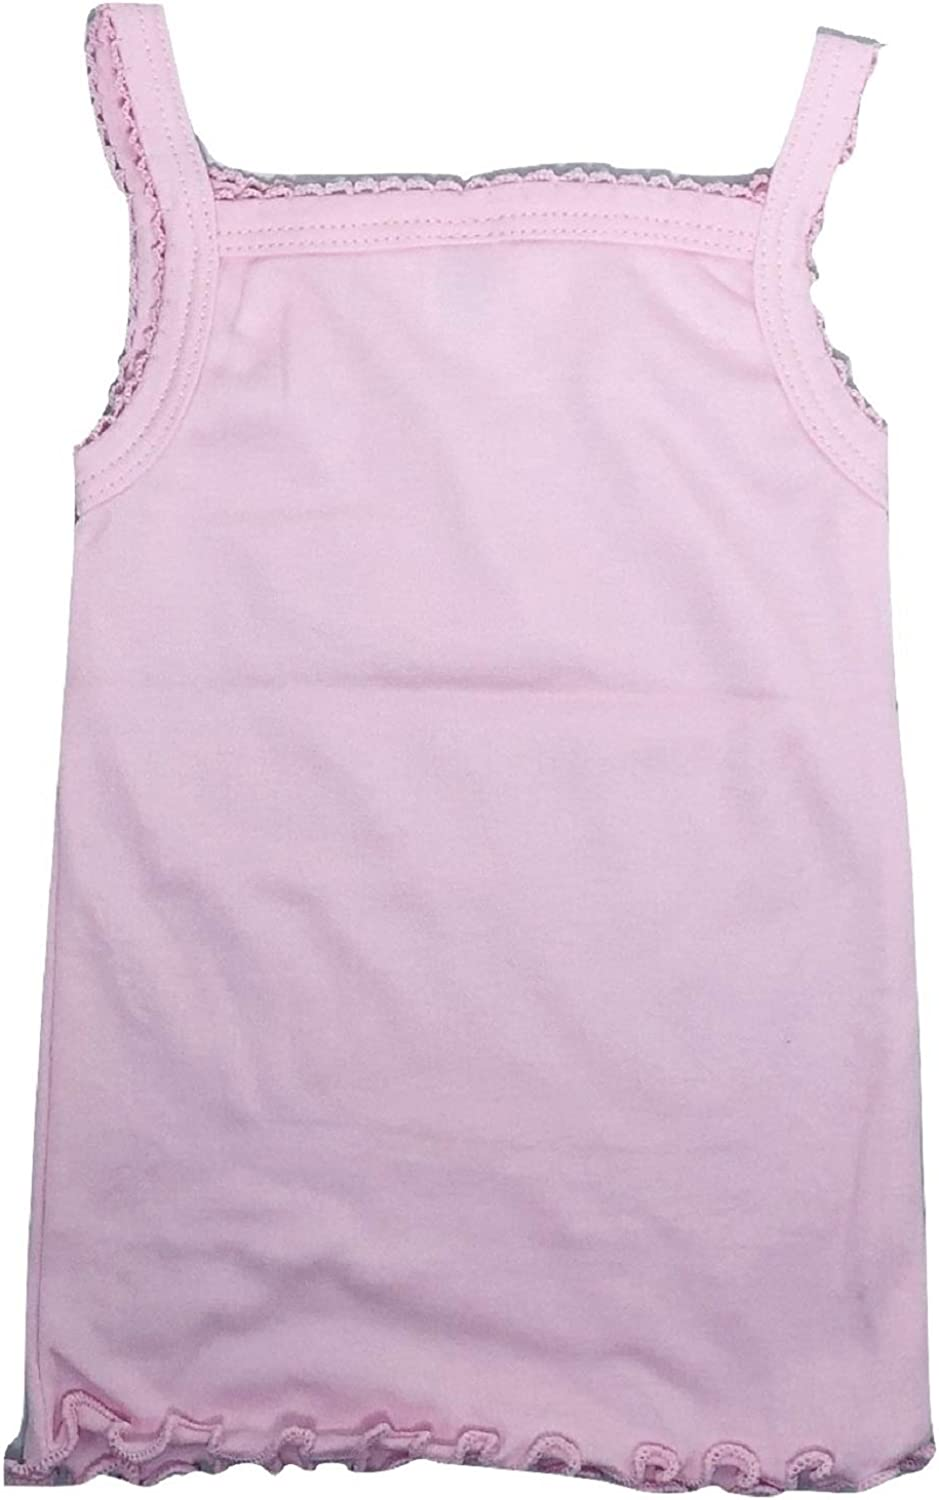 4 Pack 14, Pastel Colors I/&S Girls 4 Pack Soft Cotton Cami Spaghetti Strap Tank Tops Undershirts